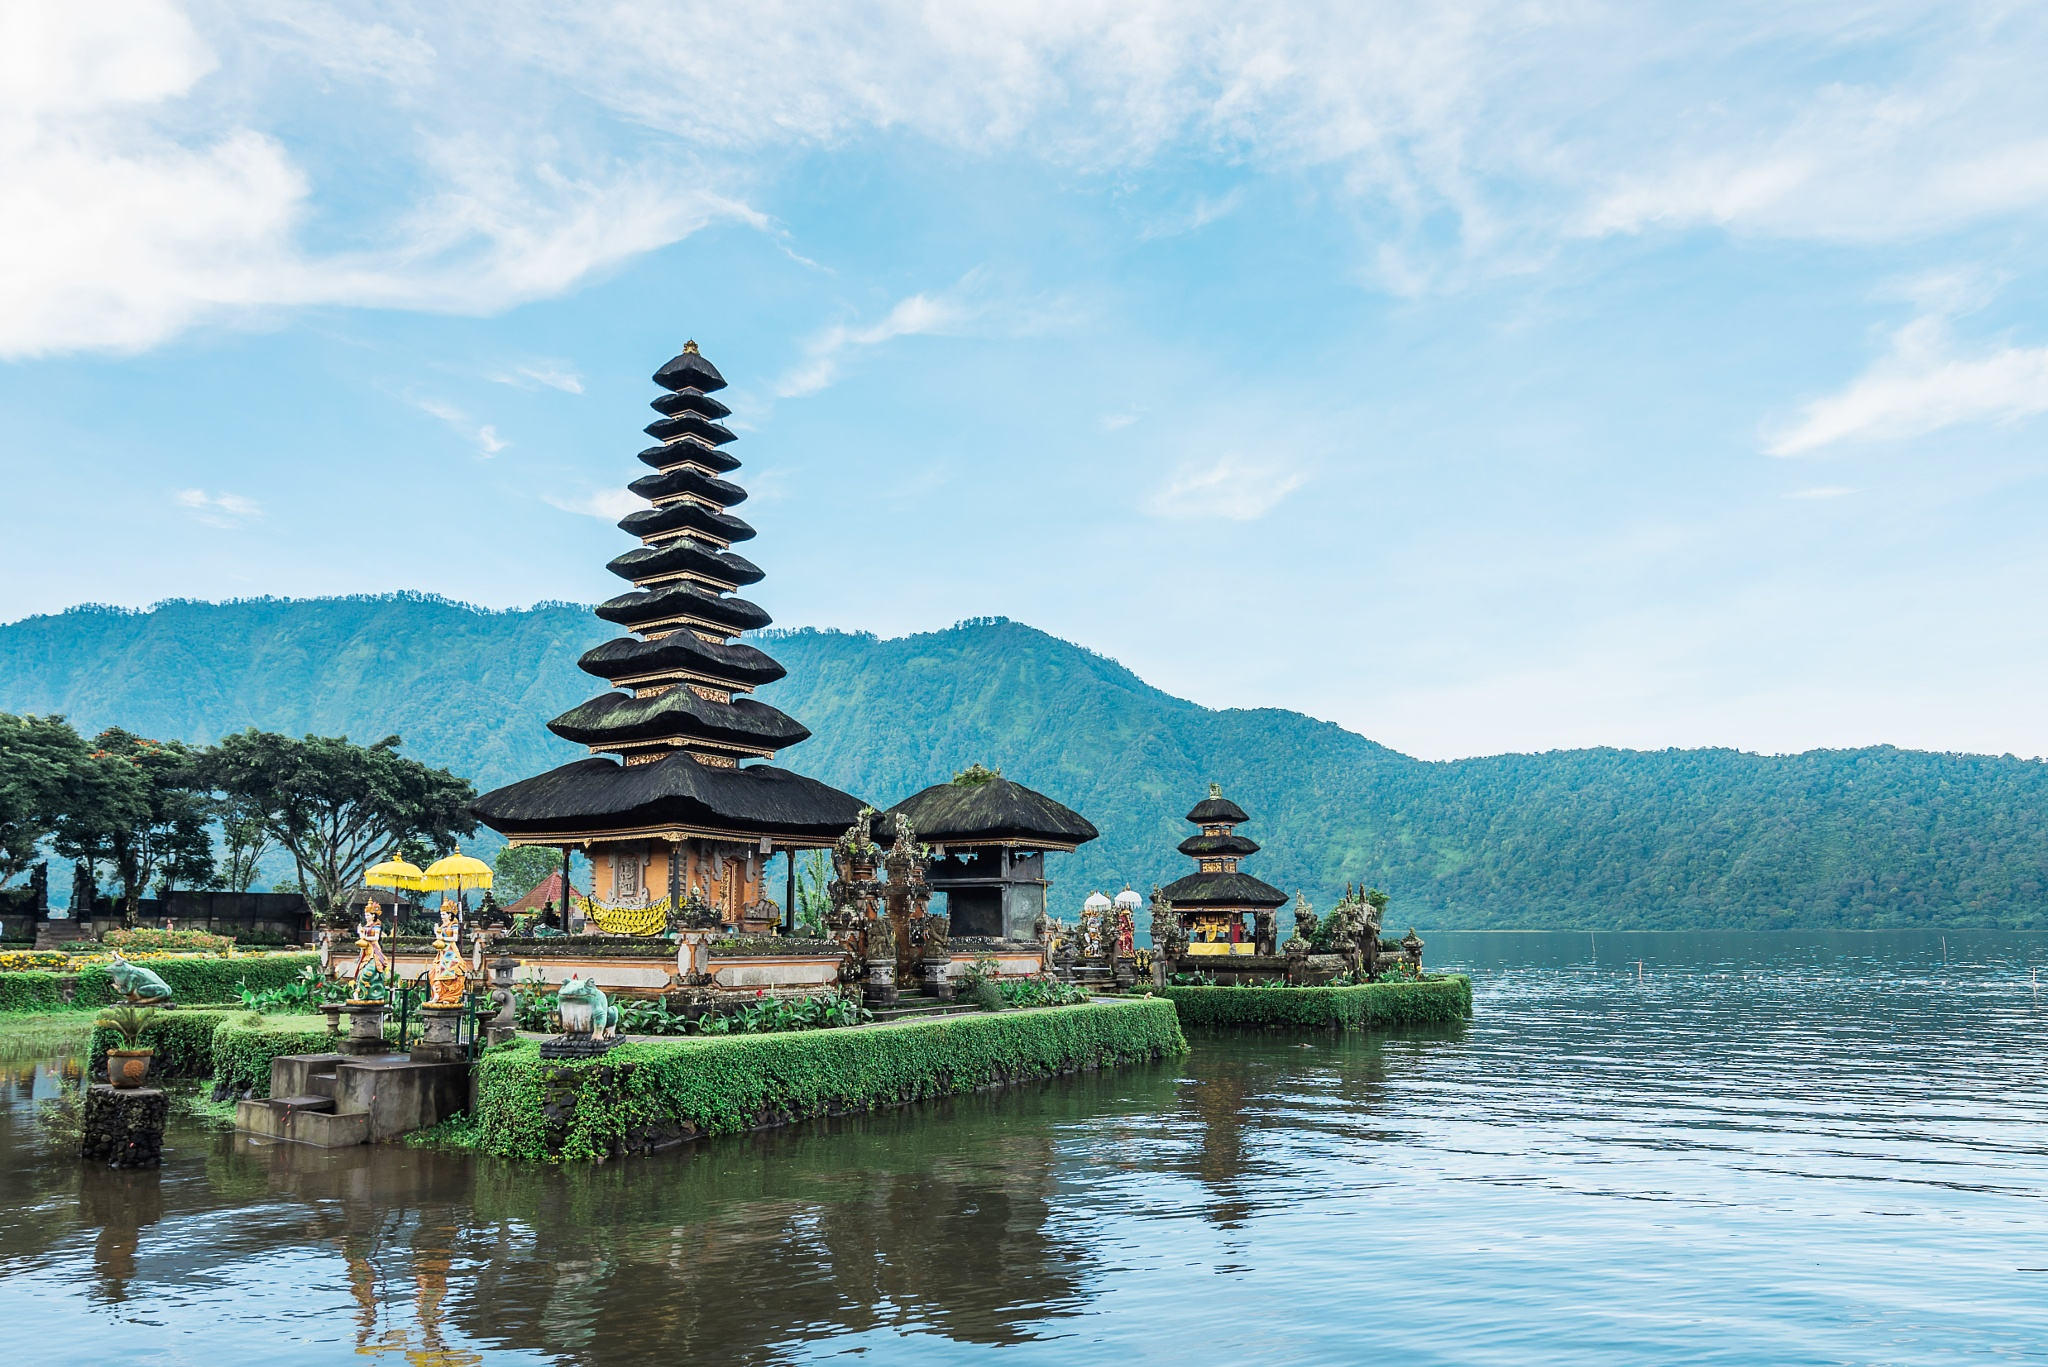 Ulun Danu Temple - Bali - Indonesia by RandyTan Travelogue